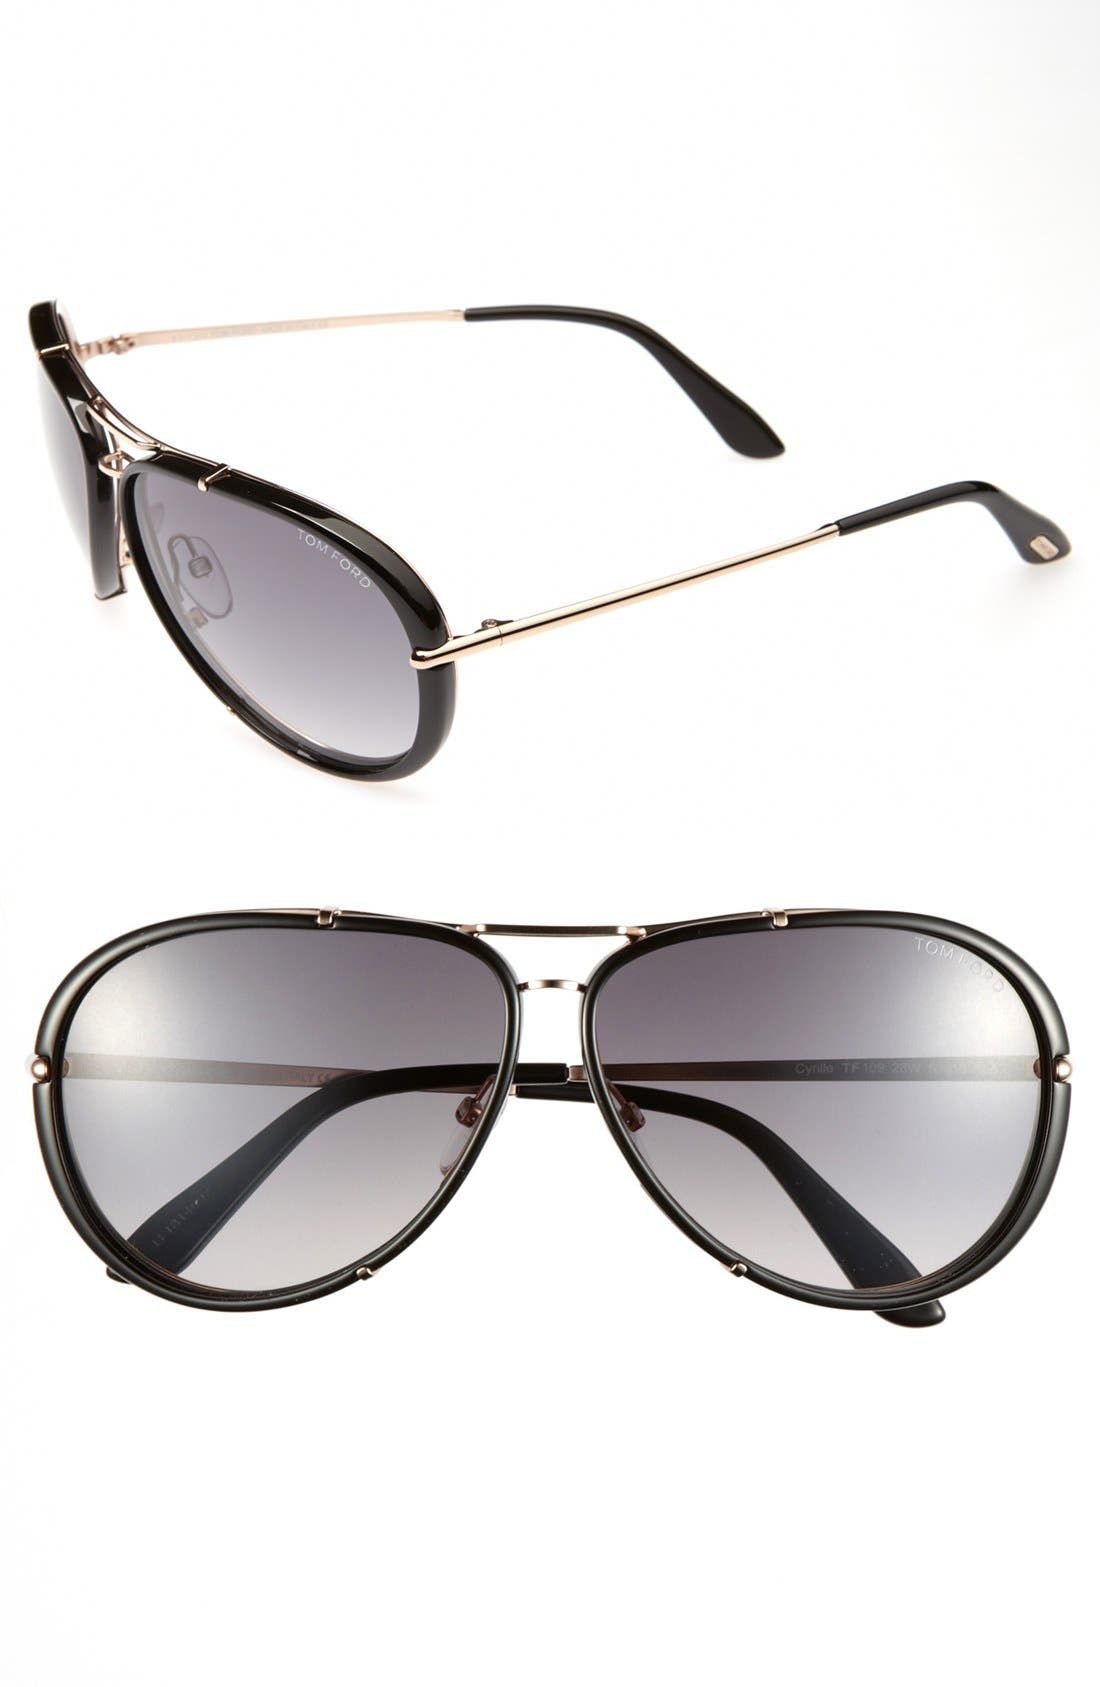 Alternate Image 1 Selected - Tom Ford 'Cyrille' 63mm Aviator Sunglasses